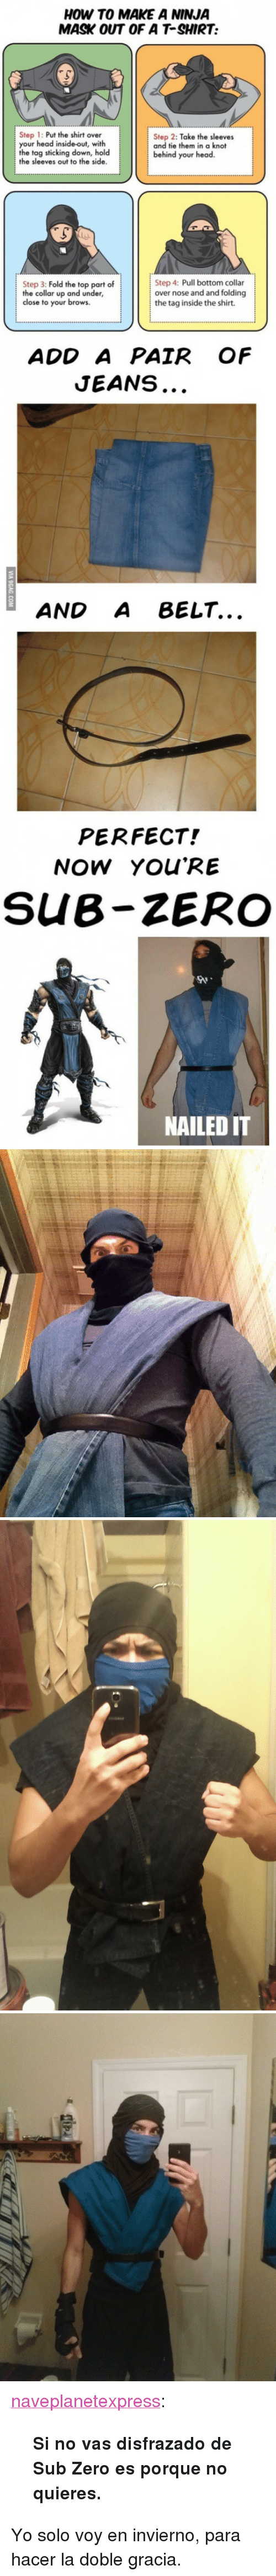 "Sub-Zero: HOW TO MAKE A NINJA  MASK OUT OF A T-SHIRT:  Step 1: Put the shirt over  your head inside-out, with  the tag sticking down, hold  the sleeves out to the side  Step 2: Take the sleeves  and tie them in a knot  behind your head  Step 3: Fold the top part of  the collar up and under,  close to your brows.  Step 4: Pull bottom collar  over nose and and folding  the tag inside the shirt.  ADD A PAIR OF  JEANS  AND A BELT...  PERFECT!  NOW YOU'RE  SUB-ZERO  骑,  NAILED IT <p><a class=""tumblr_blog"" href=""http://naveplanetexpress.tumblr.com/post/83347219052/si-no-vas-disfrazado-de-sub-zero-es-porque-no"">naveplanetexpress</a>:</p> <blockquote> <p><strong>Si no vas disfrazado de Sub Zero es porque no quieres.</strong></p> </blockquote> <p>Yo solo voy en invierno, para hacer la doble gracia.</p>"